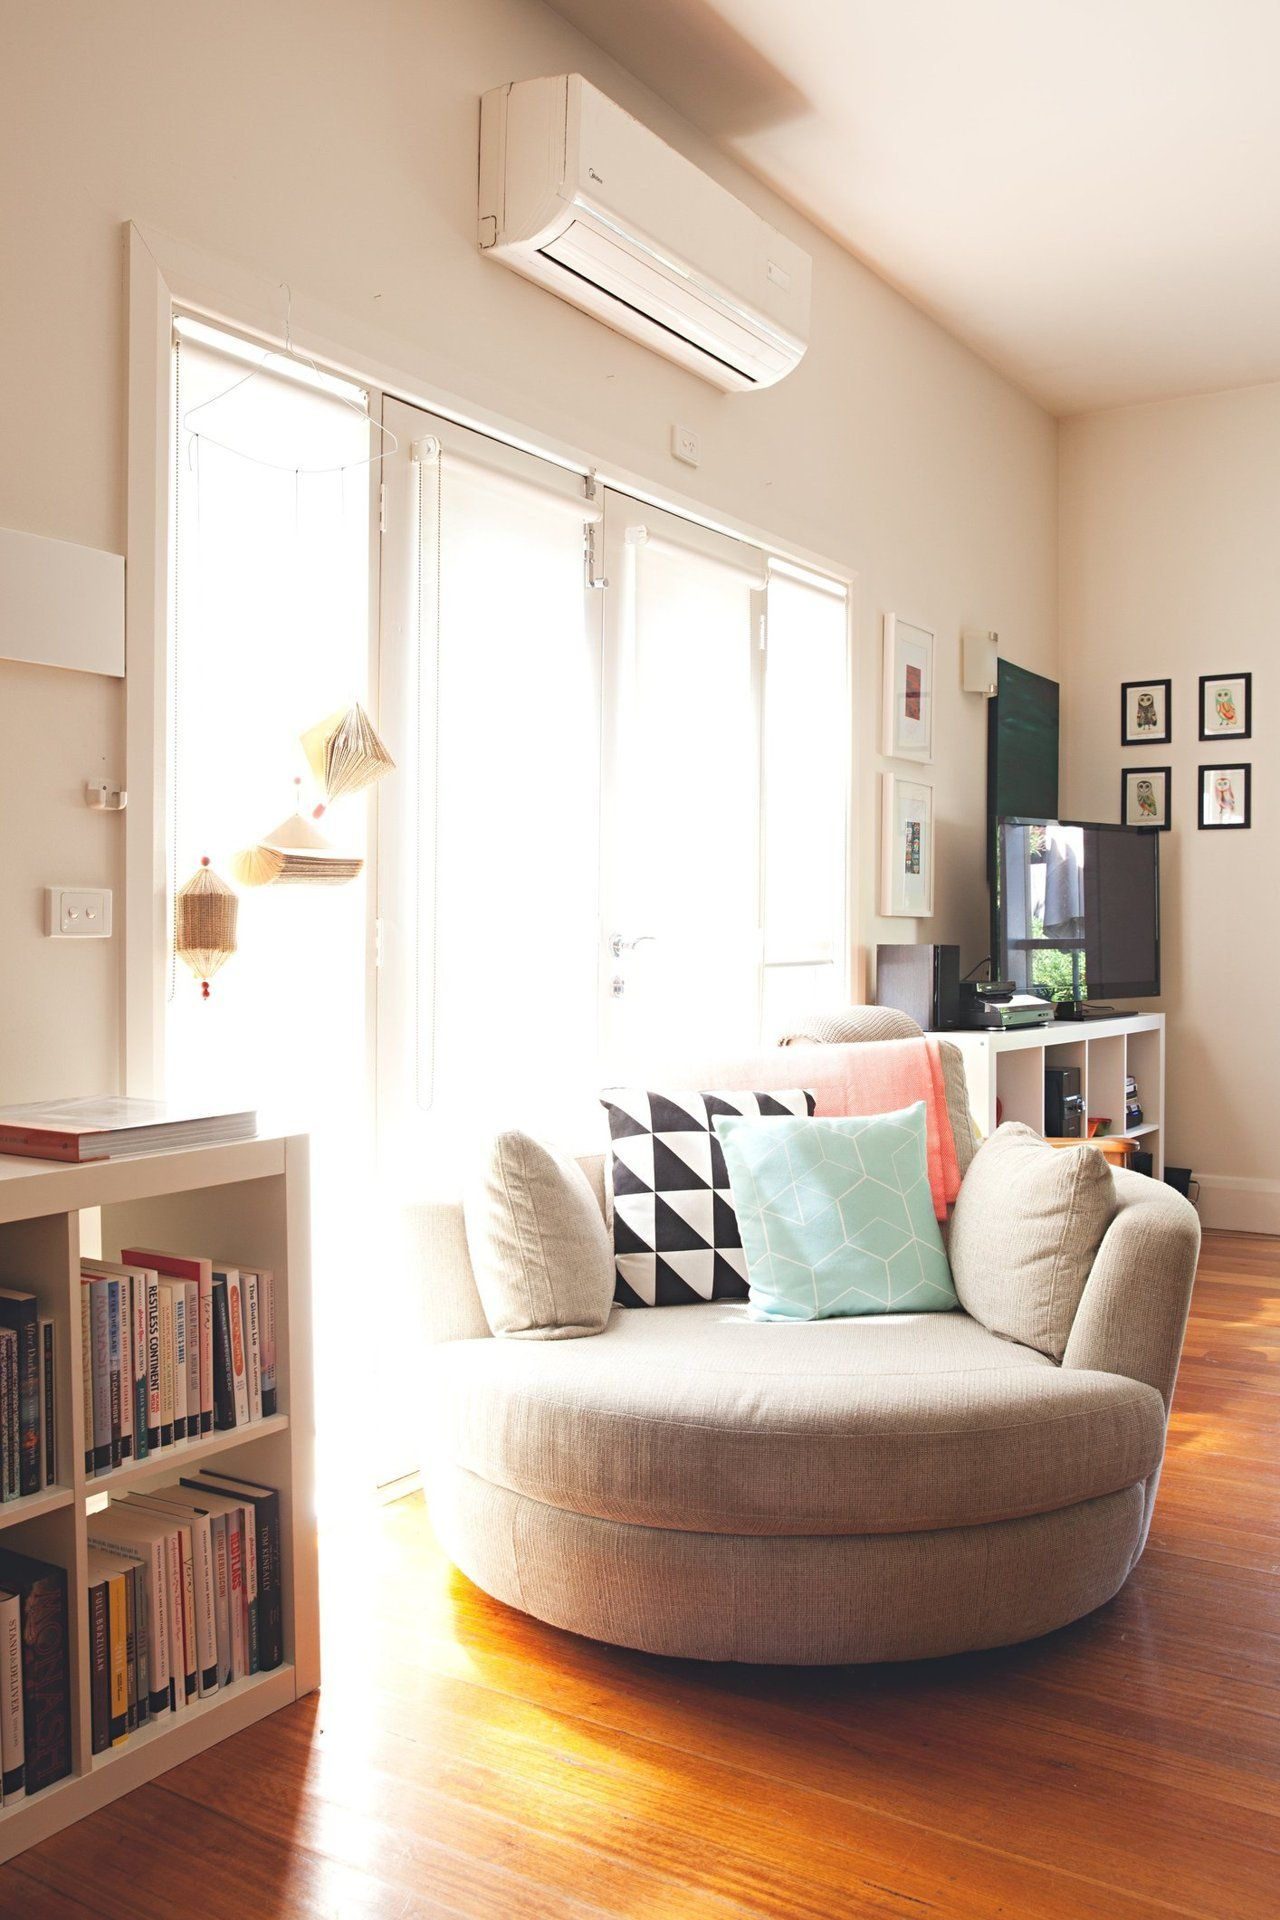 House Tour: A Happy, Colorful Home In Australia. Cuddler ChairReading  ChairsComfy ...